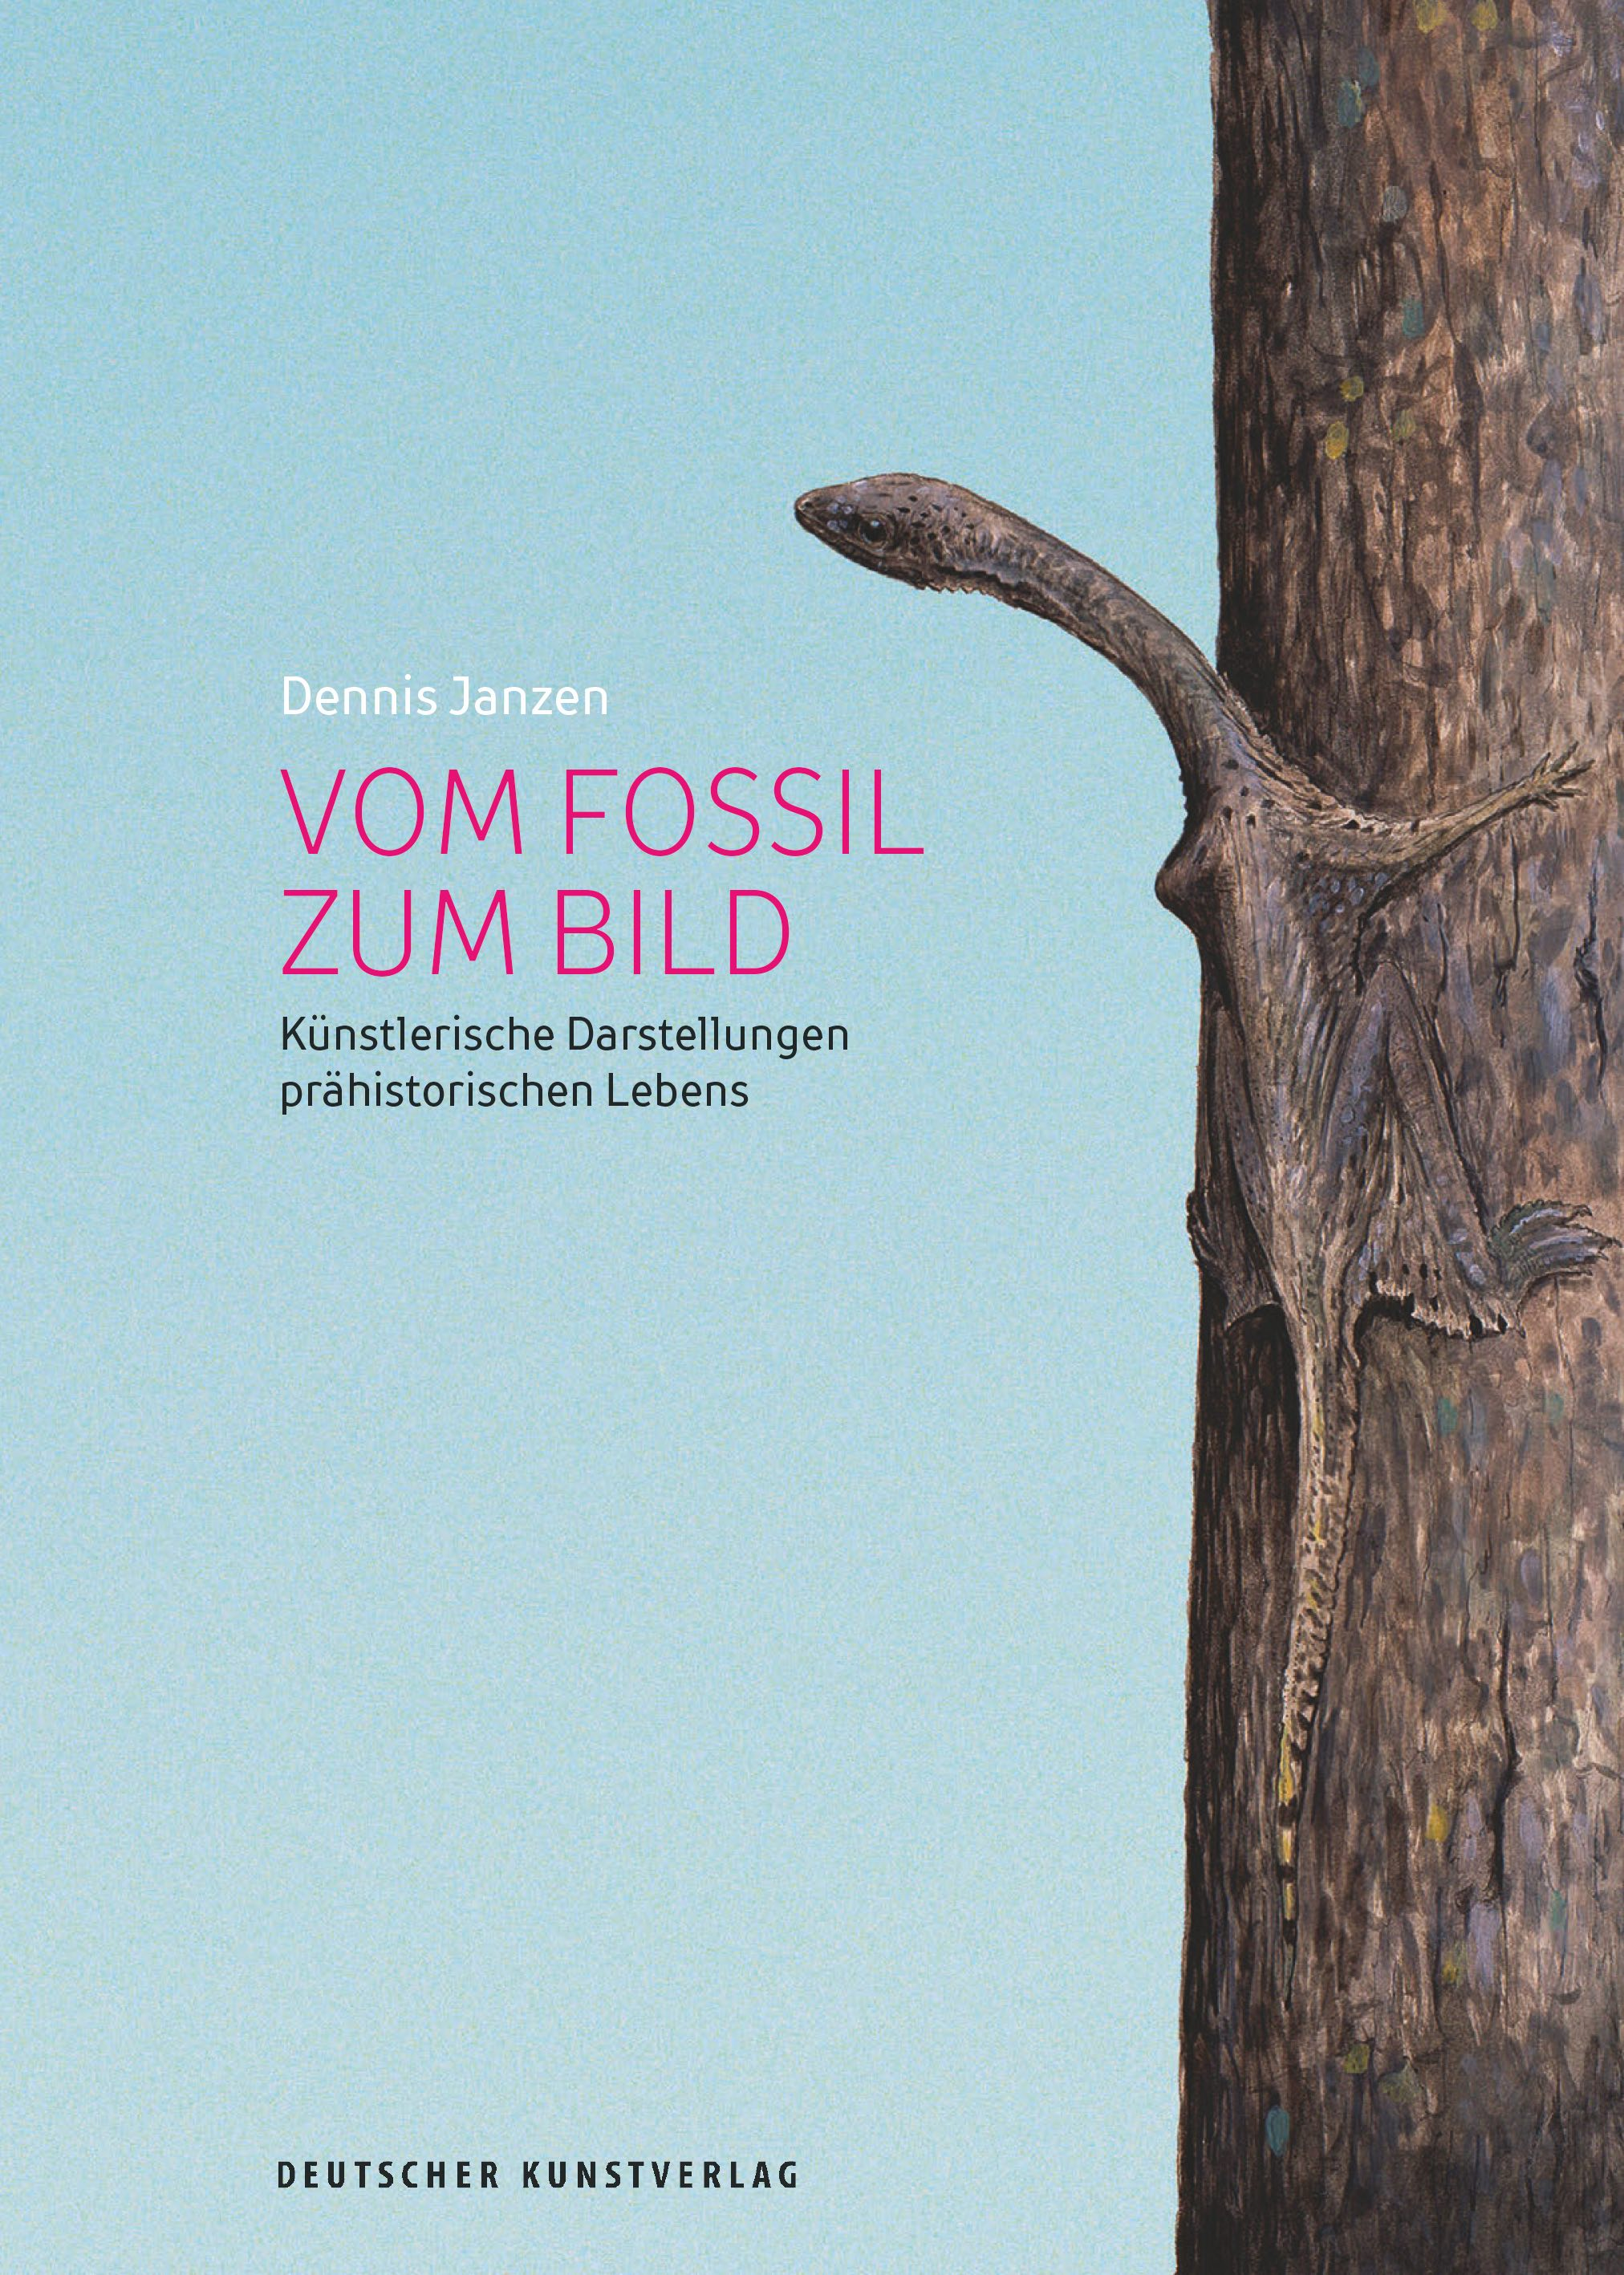 Cover @ Deutscher Kunstverlag